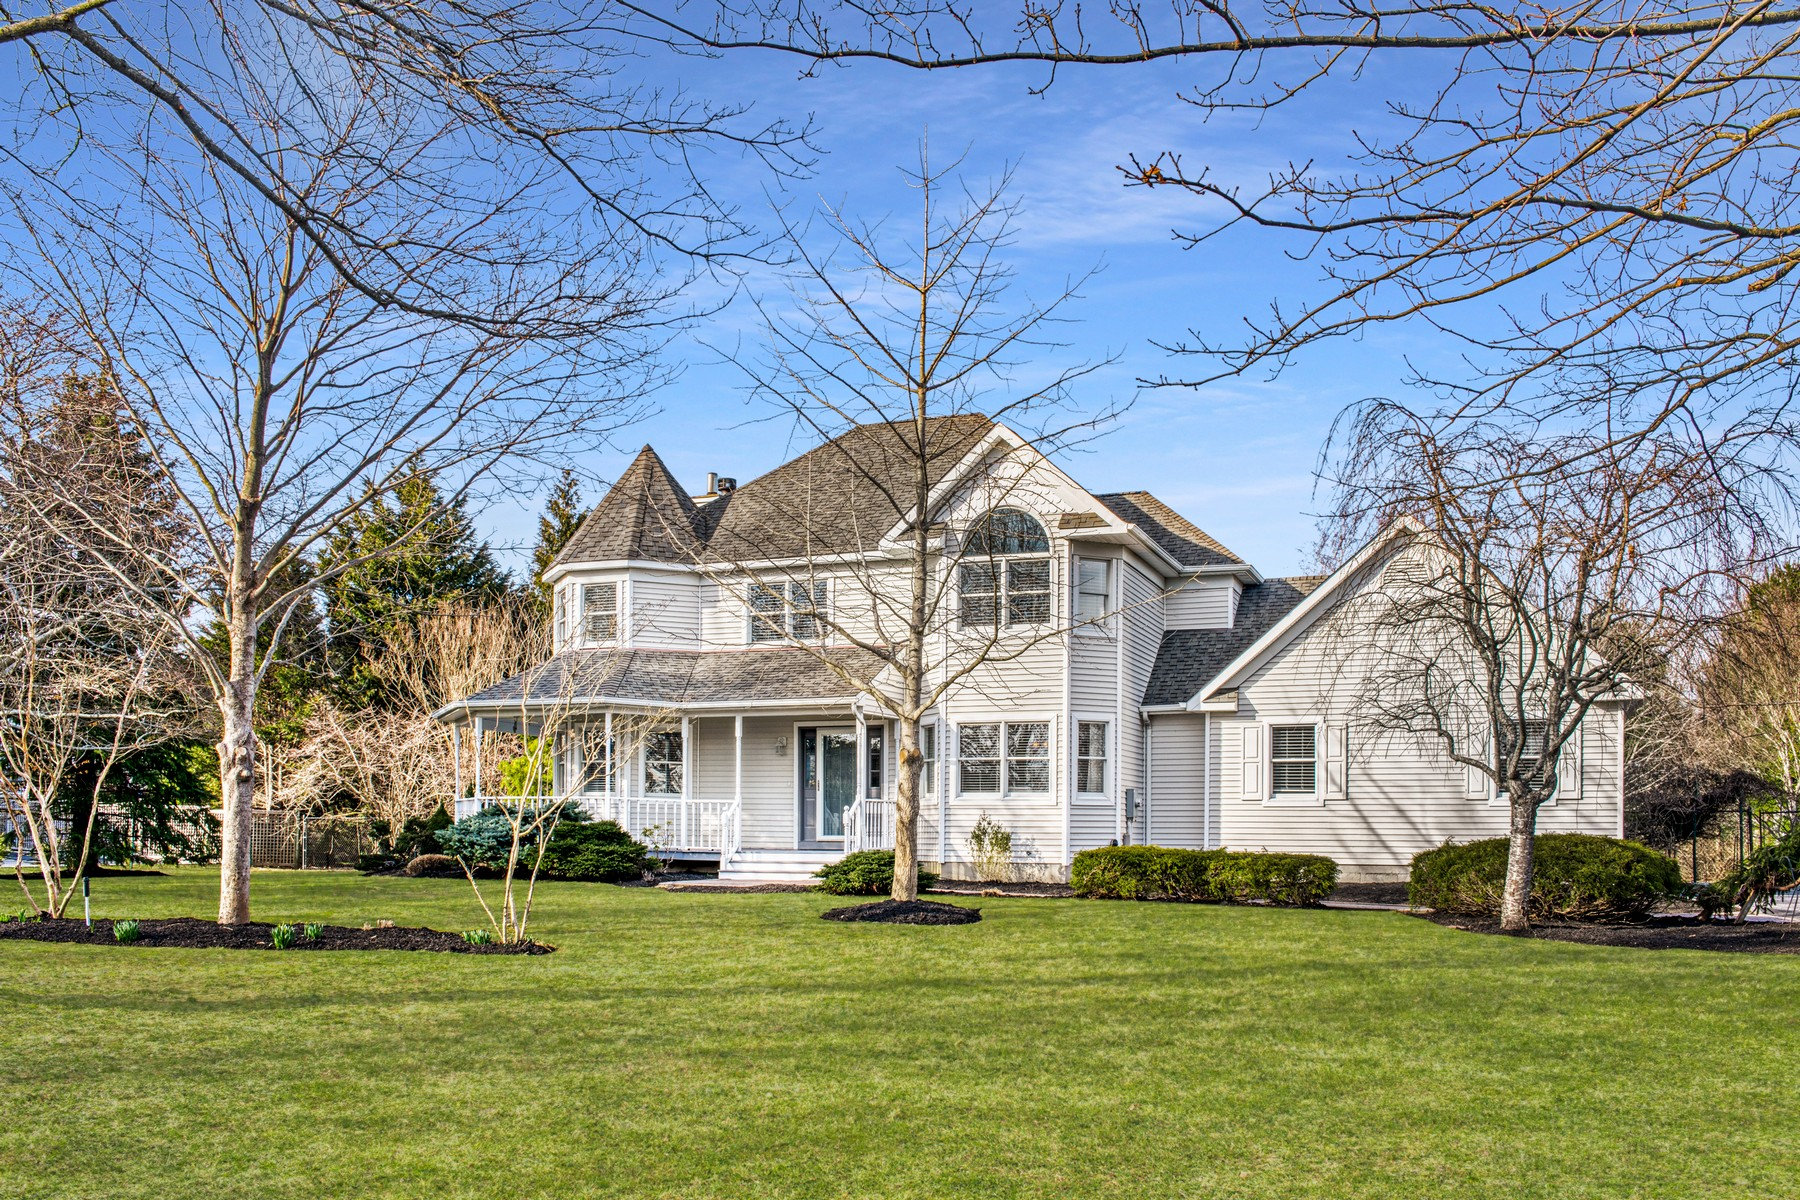 Single Family Homes for Sale at Southold 225 Water Terrace Southold, New York 11971 United States